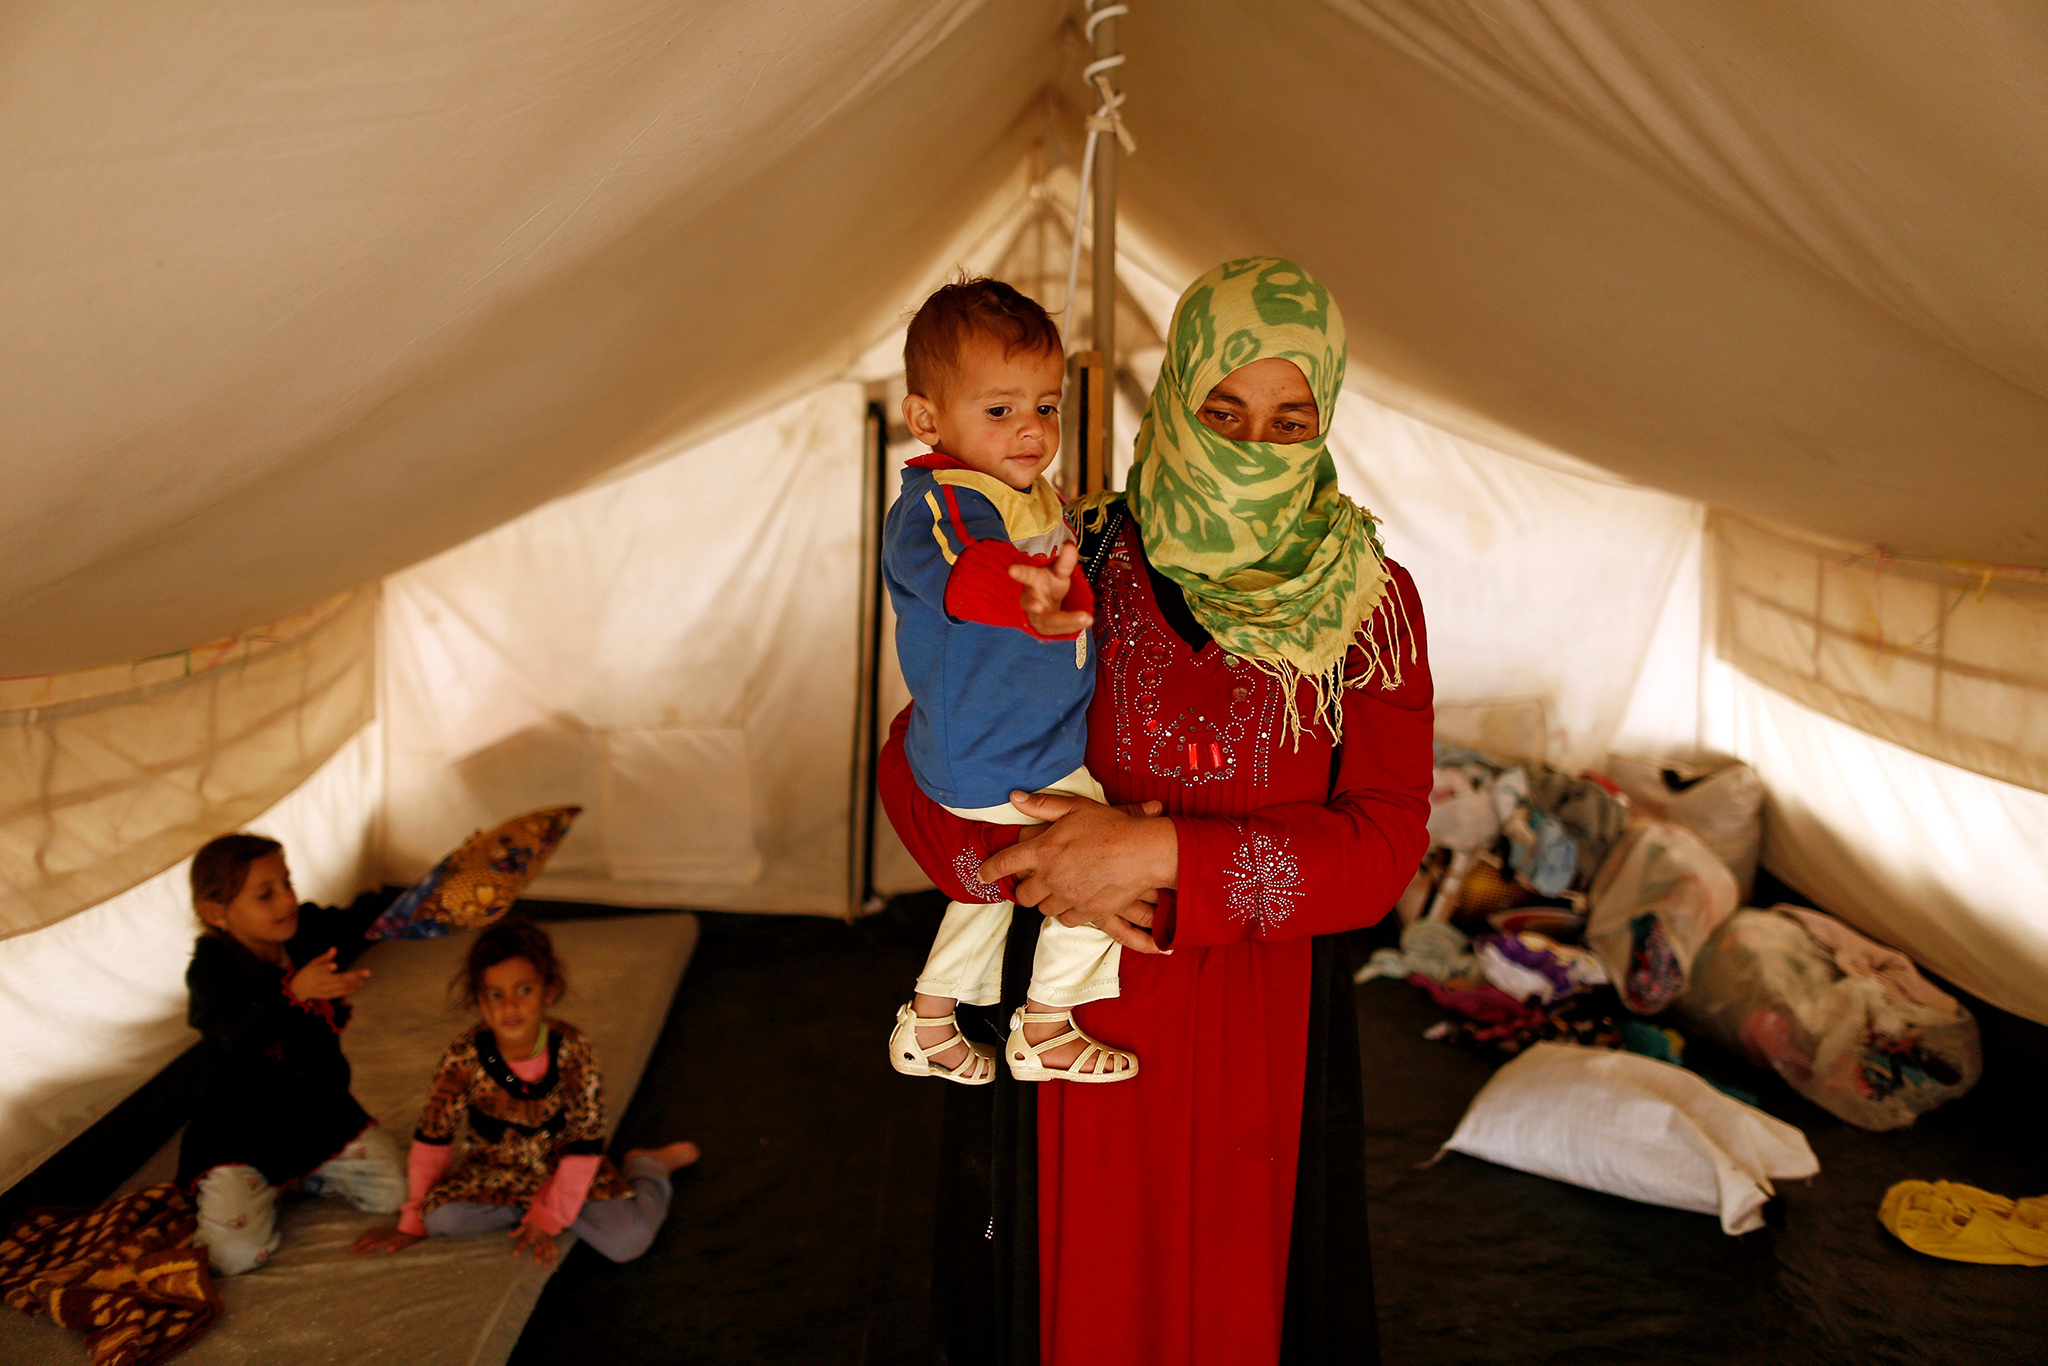 "A woman who fled from Mosul carries her son Riyad, 1, who was born under Islamic State rule and has no identity documents recognised by Iraqi authorities, in Debaga refugee camp, Iraq November 10, 2016. REUTERS/Zohra Bensemra SEARCH ""CALIPHATE CHILDREN"" FOR THIS STORY. SEARCH ""WIDER IMAGE"" FOR ALL STORIES.?"